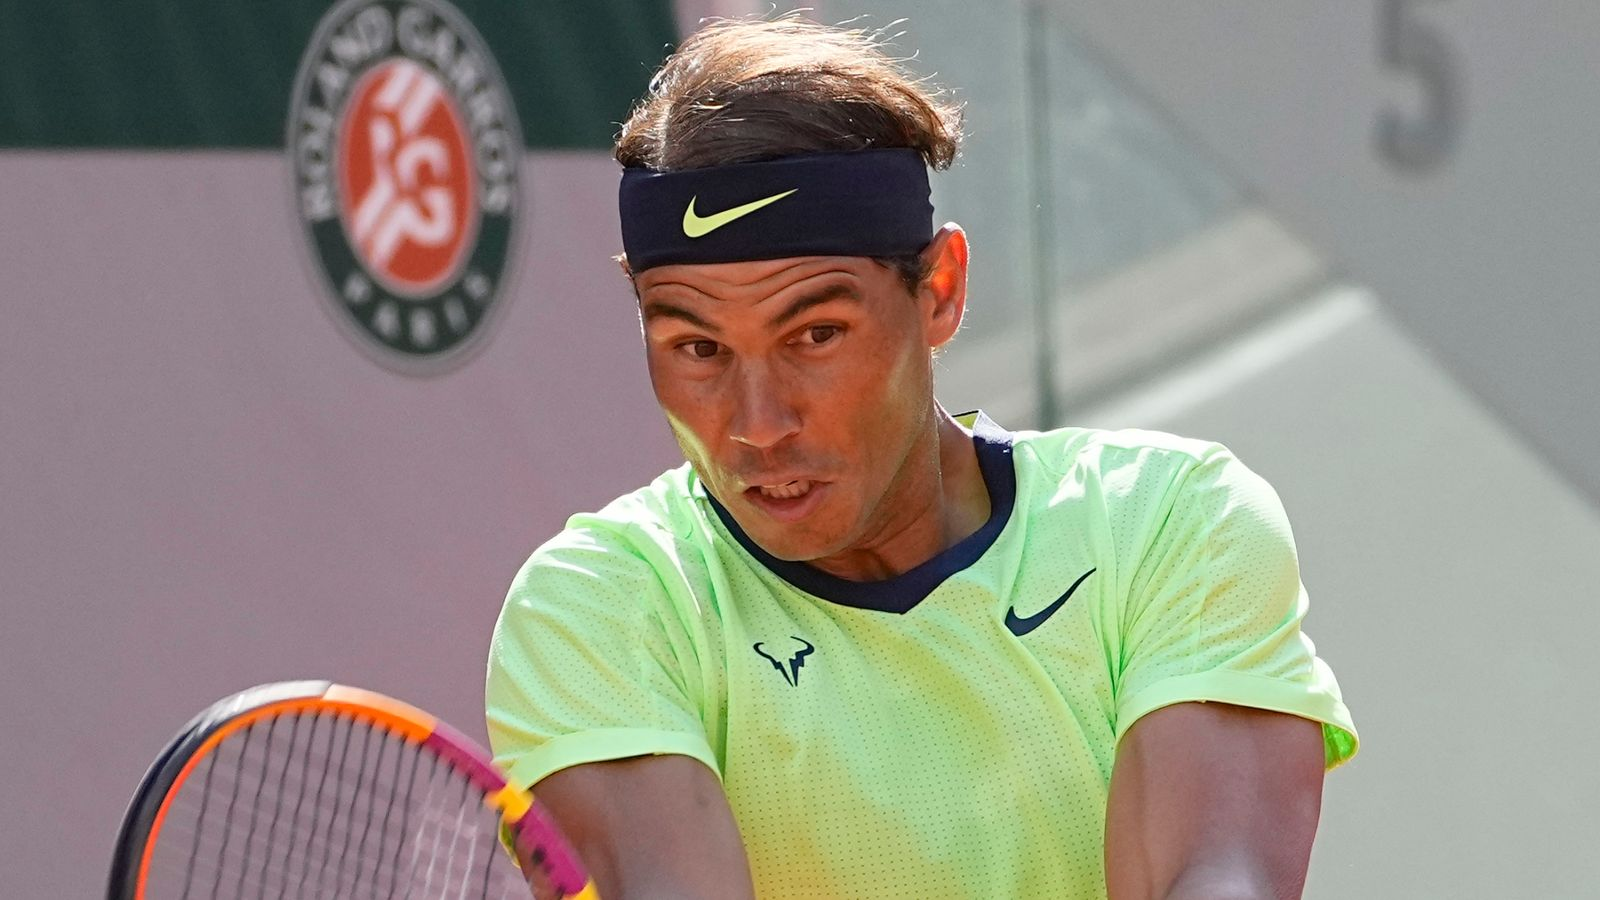 Rafael Nadal withdraws from Wimbledon and Tokyo 2020 in order to help 'prolong career'